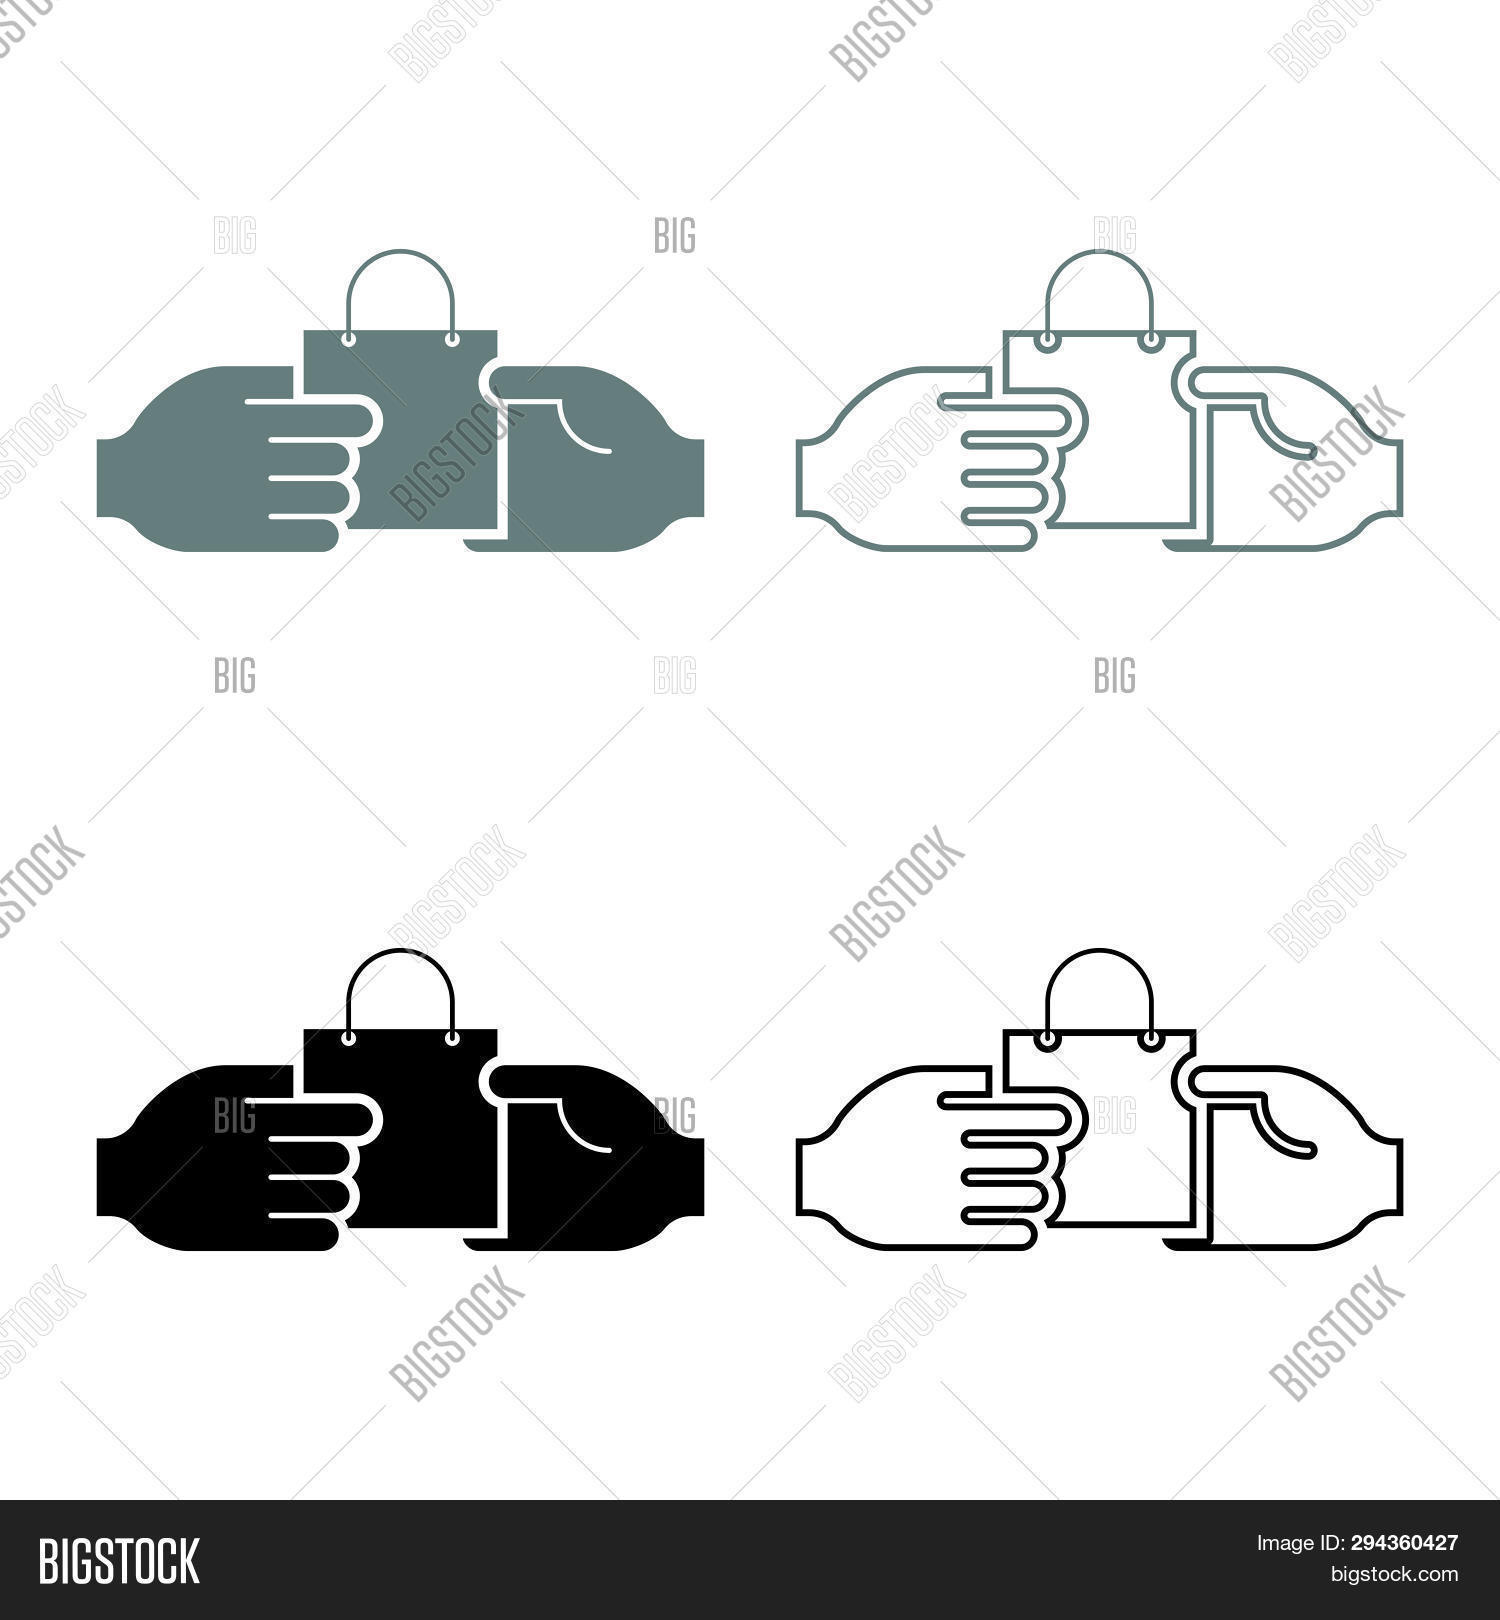 Idea,abundance,bag,black,color,commerce,commercial,concept,economy,giving,grey,hand,icon,illustration,image,investment,isolated,market,marketing,other,package,palm,pass,passing,pay,prosperity,rich,set,sign,subject,success,suit,to,trade,transfer,treasure,vector